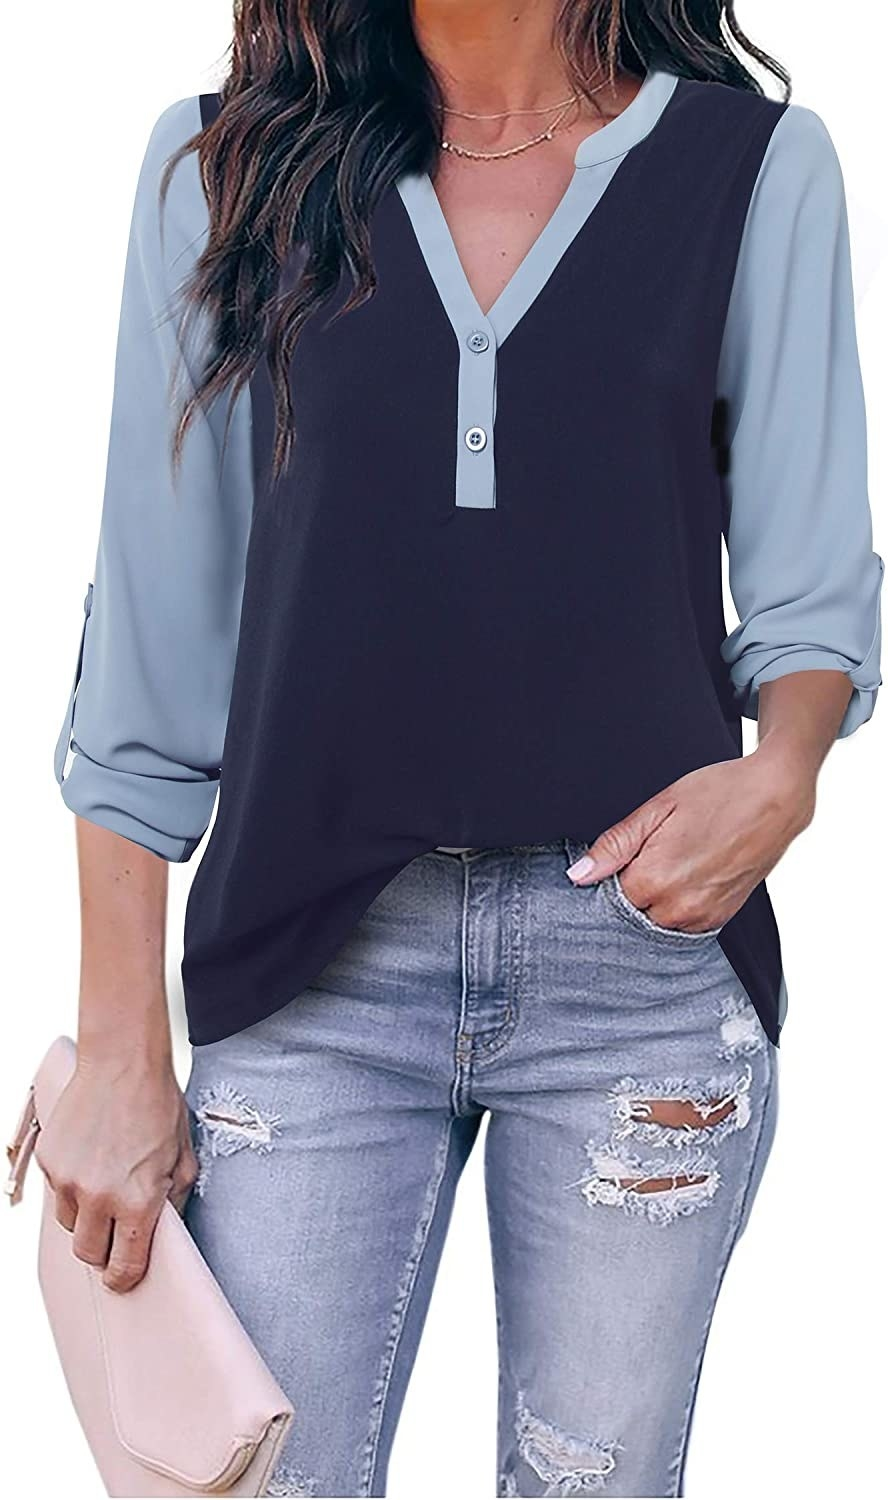 navy and light blue color blocked long sleeve henley tunic